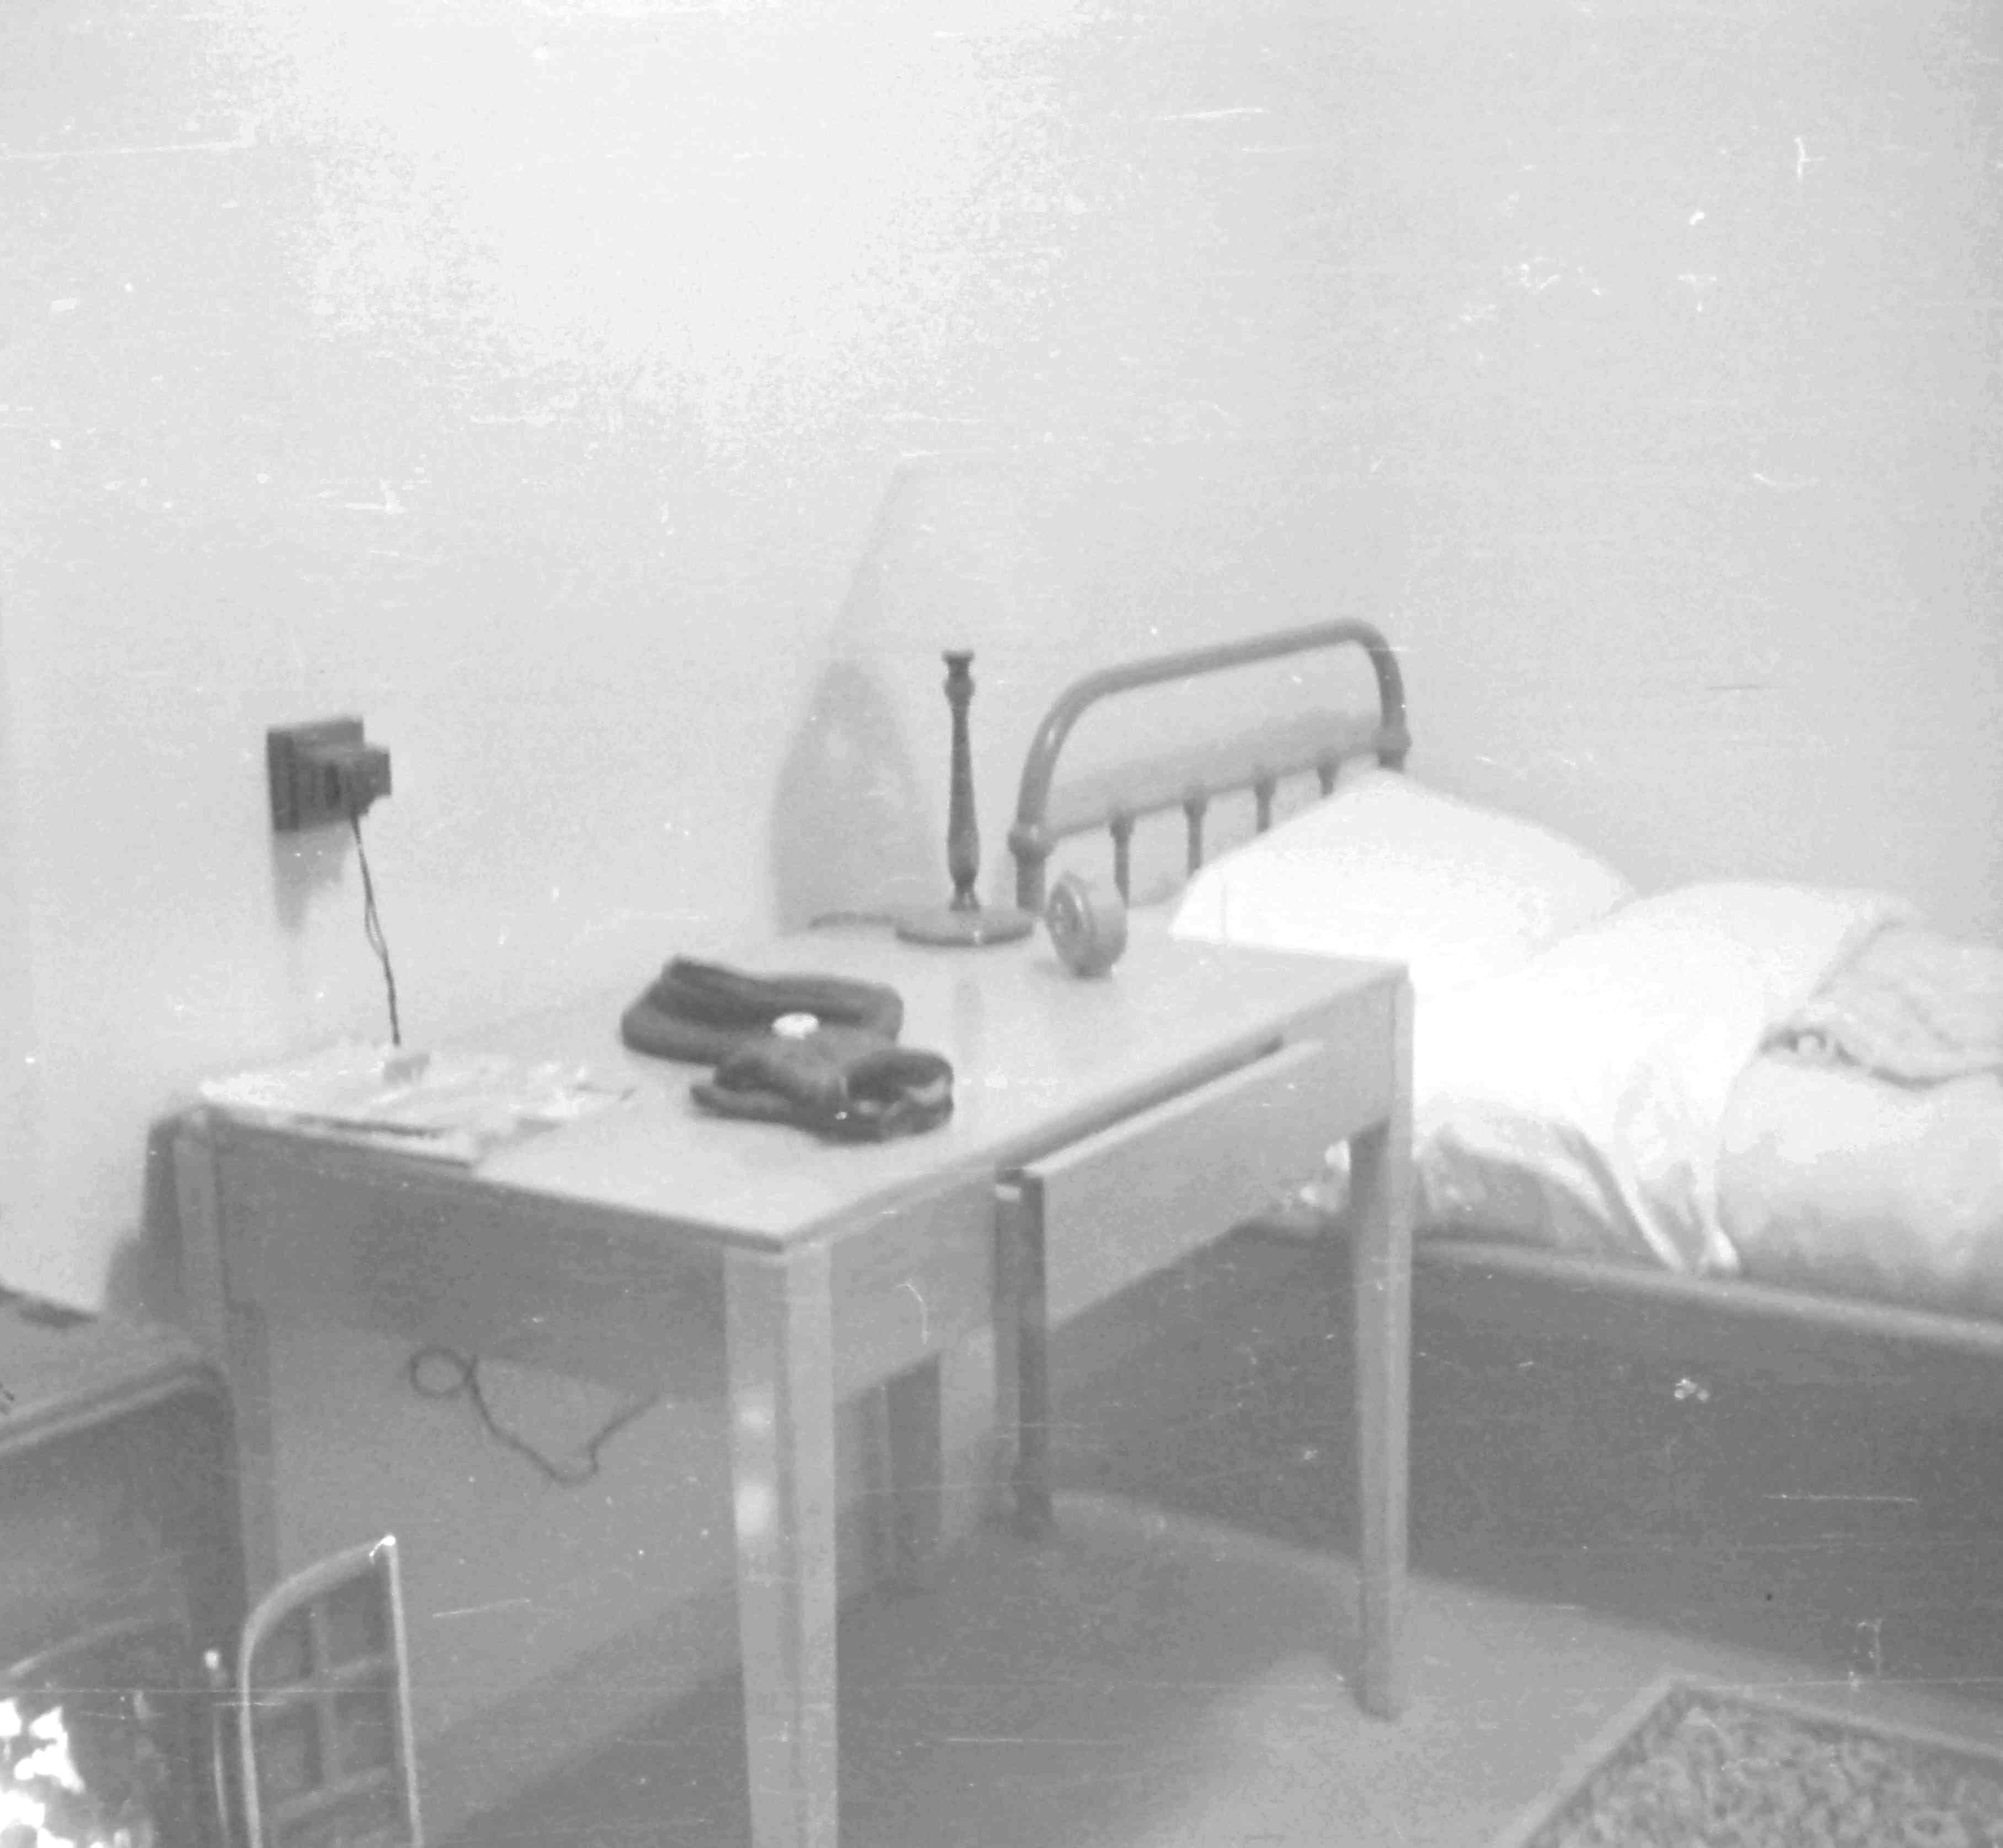 RAF Worksop, Room 26B, 1952